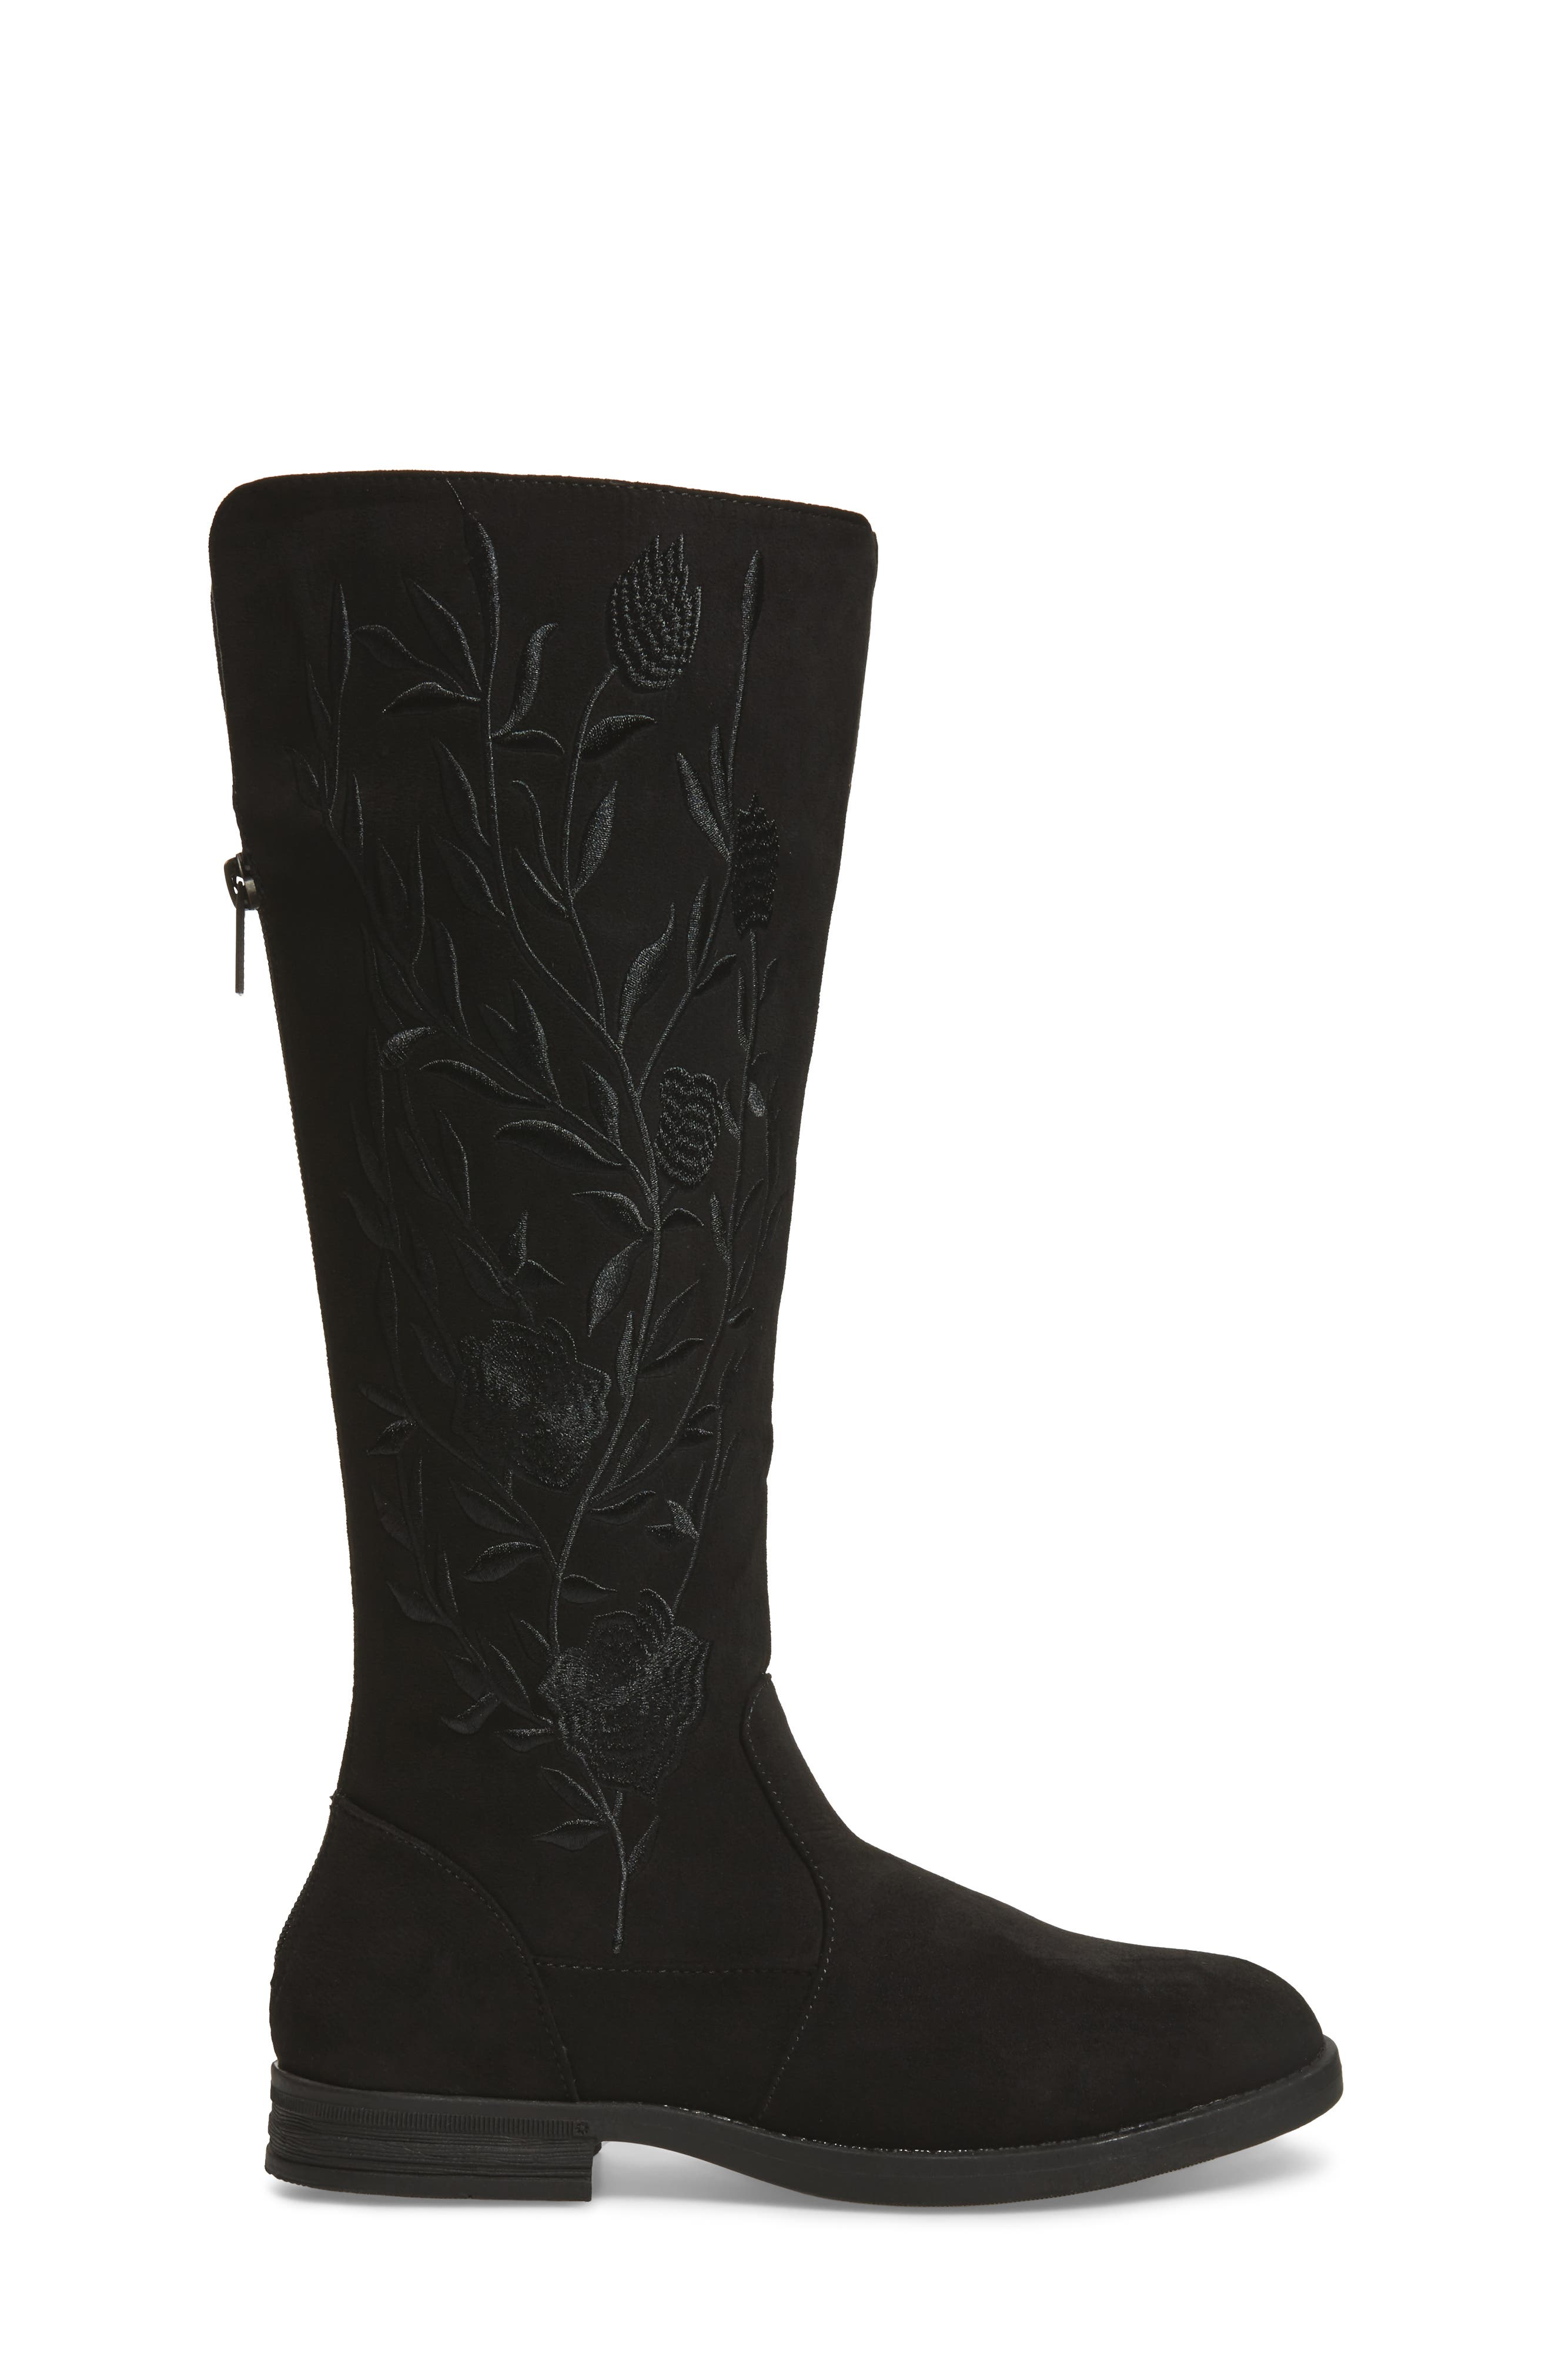 Wildflower Tall Boot,                             Alternate thumbnail 3, color,                             001